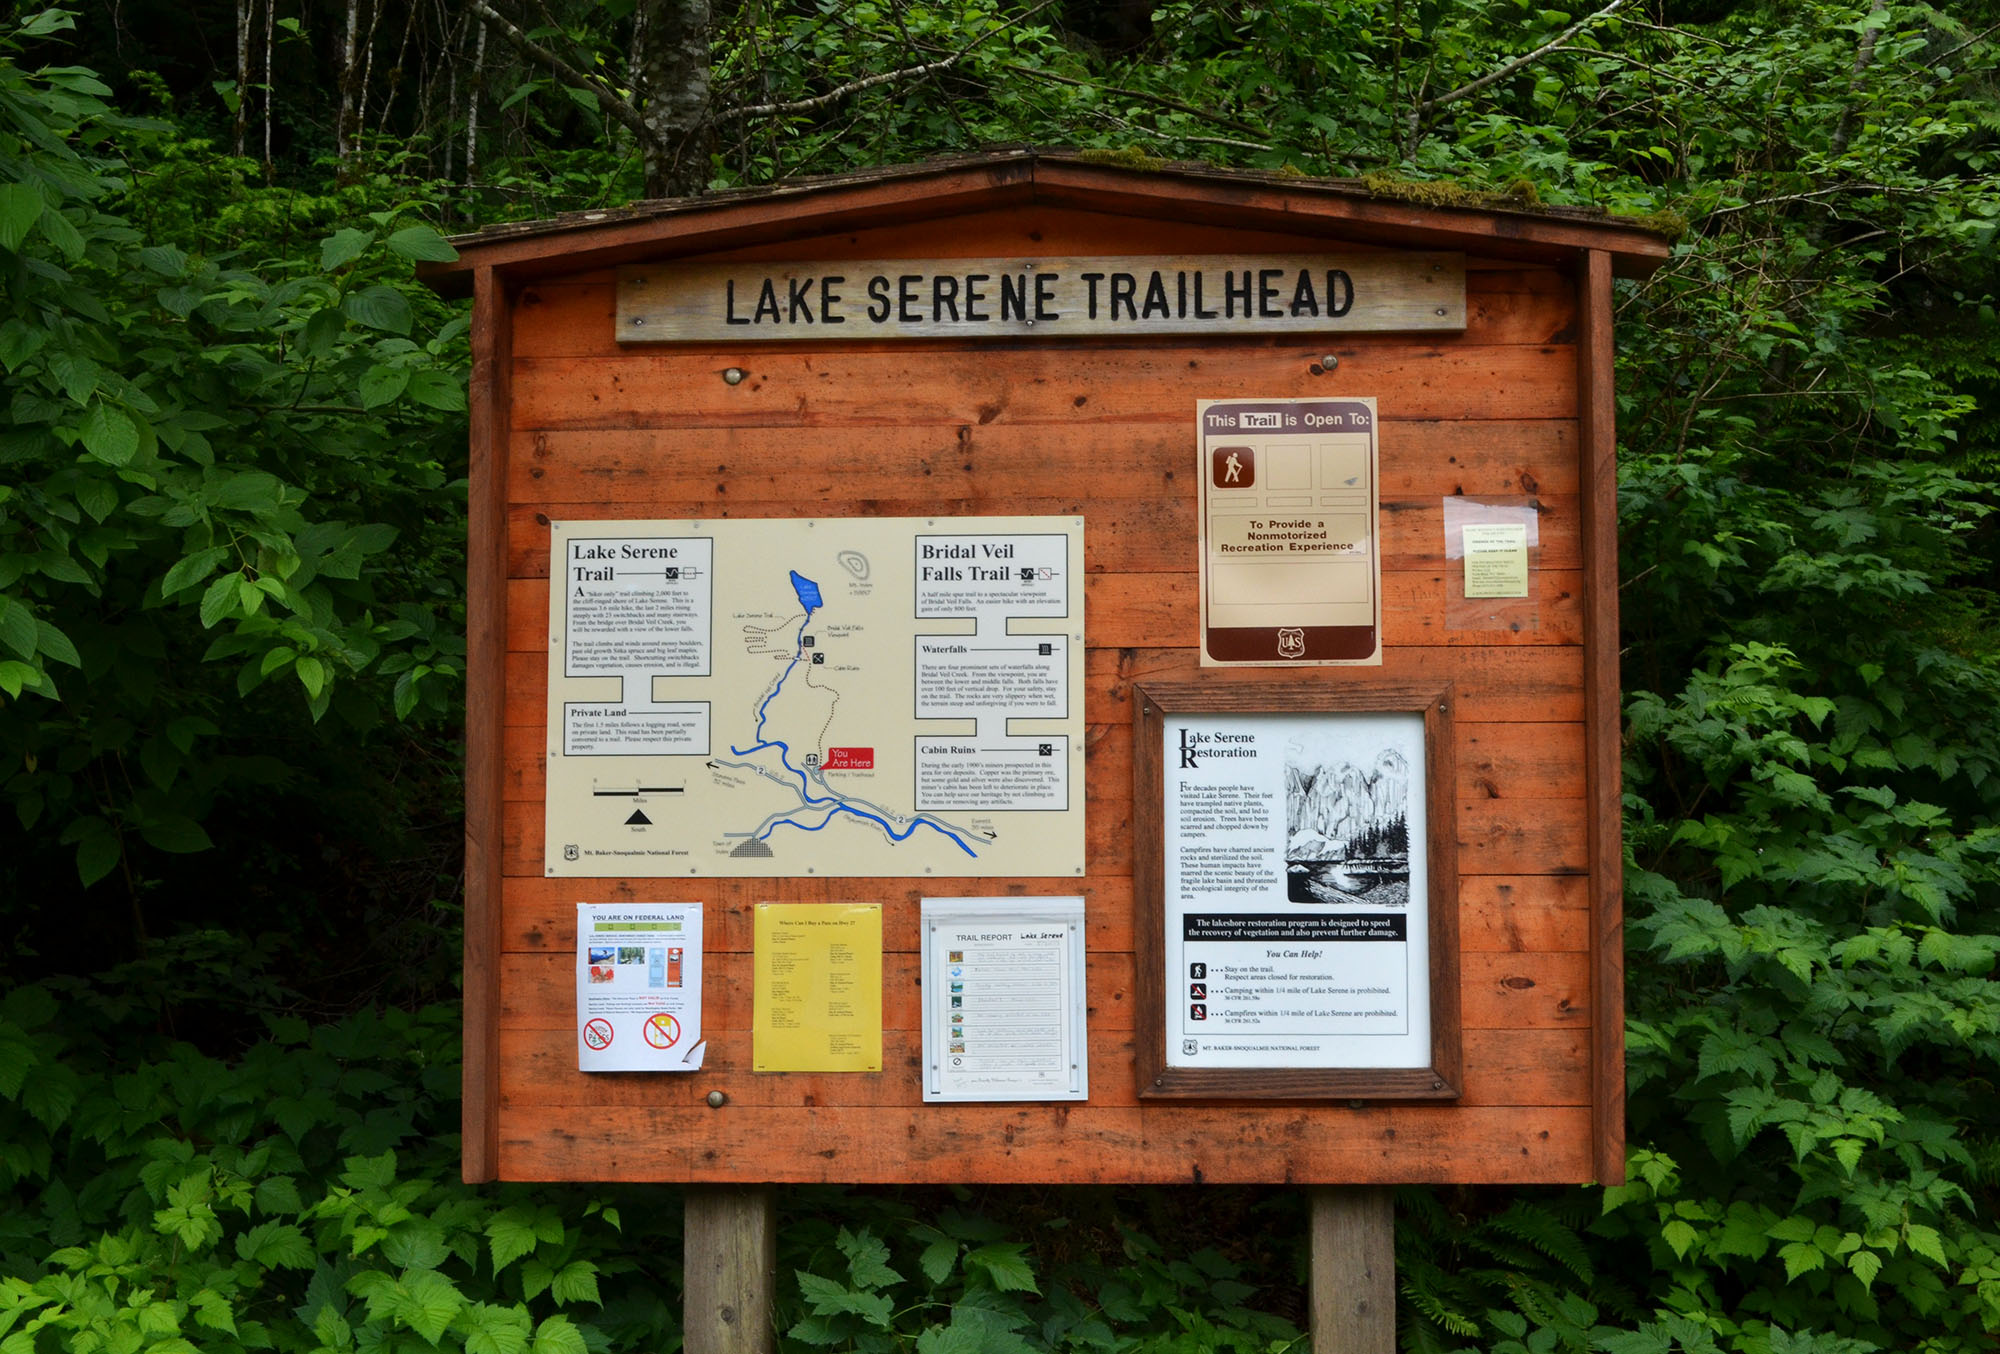 Lake Serene Trailhead